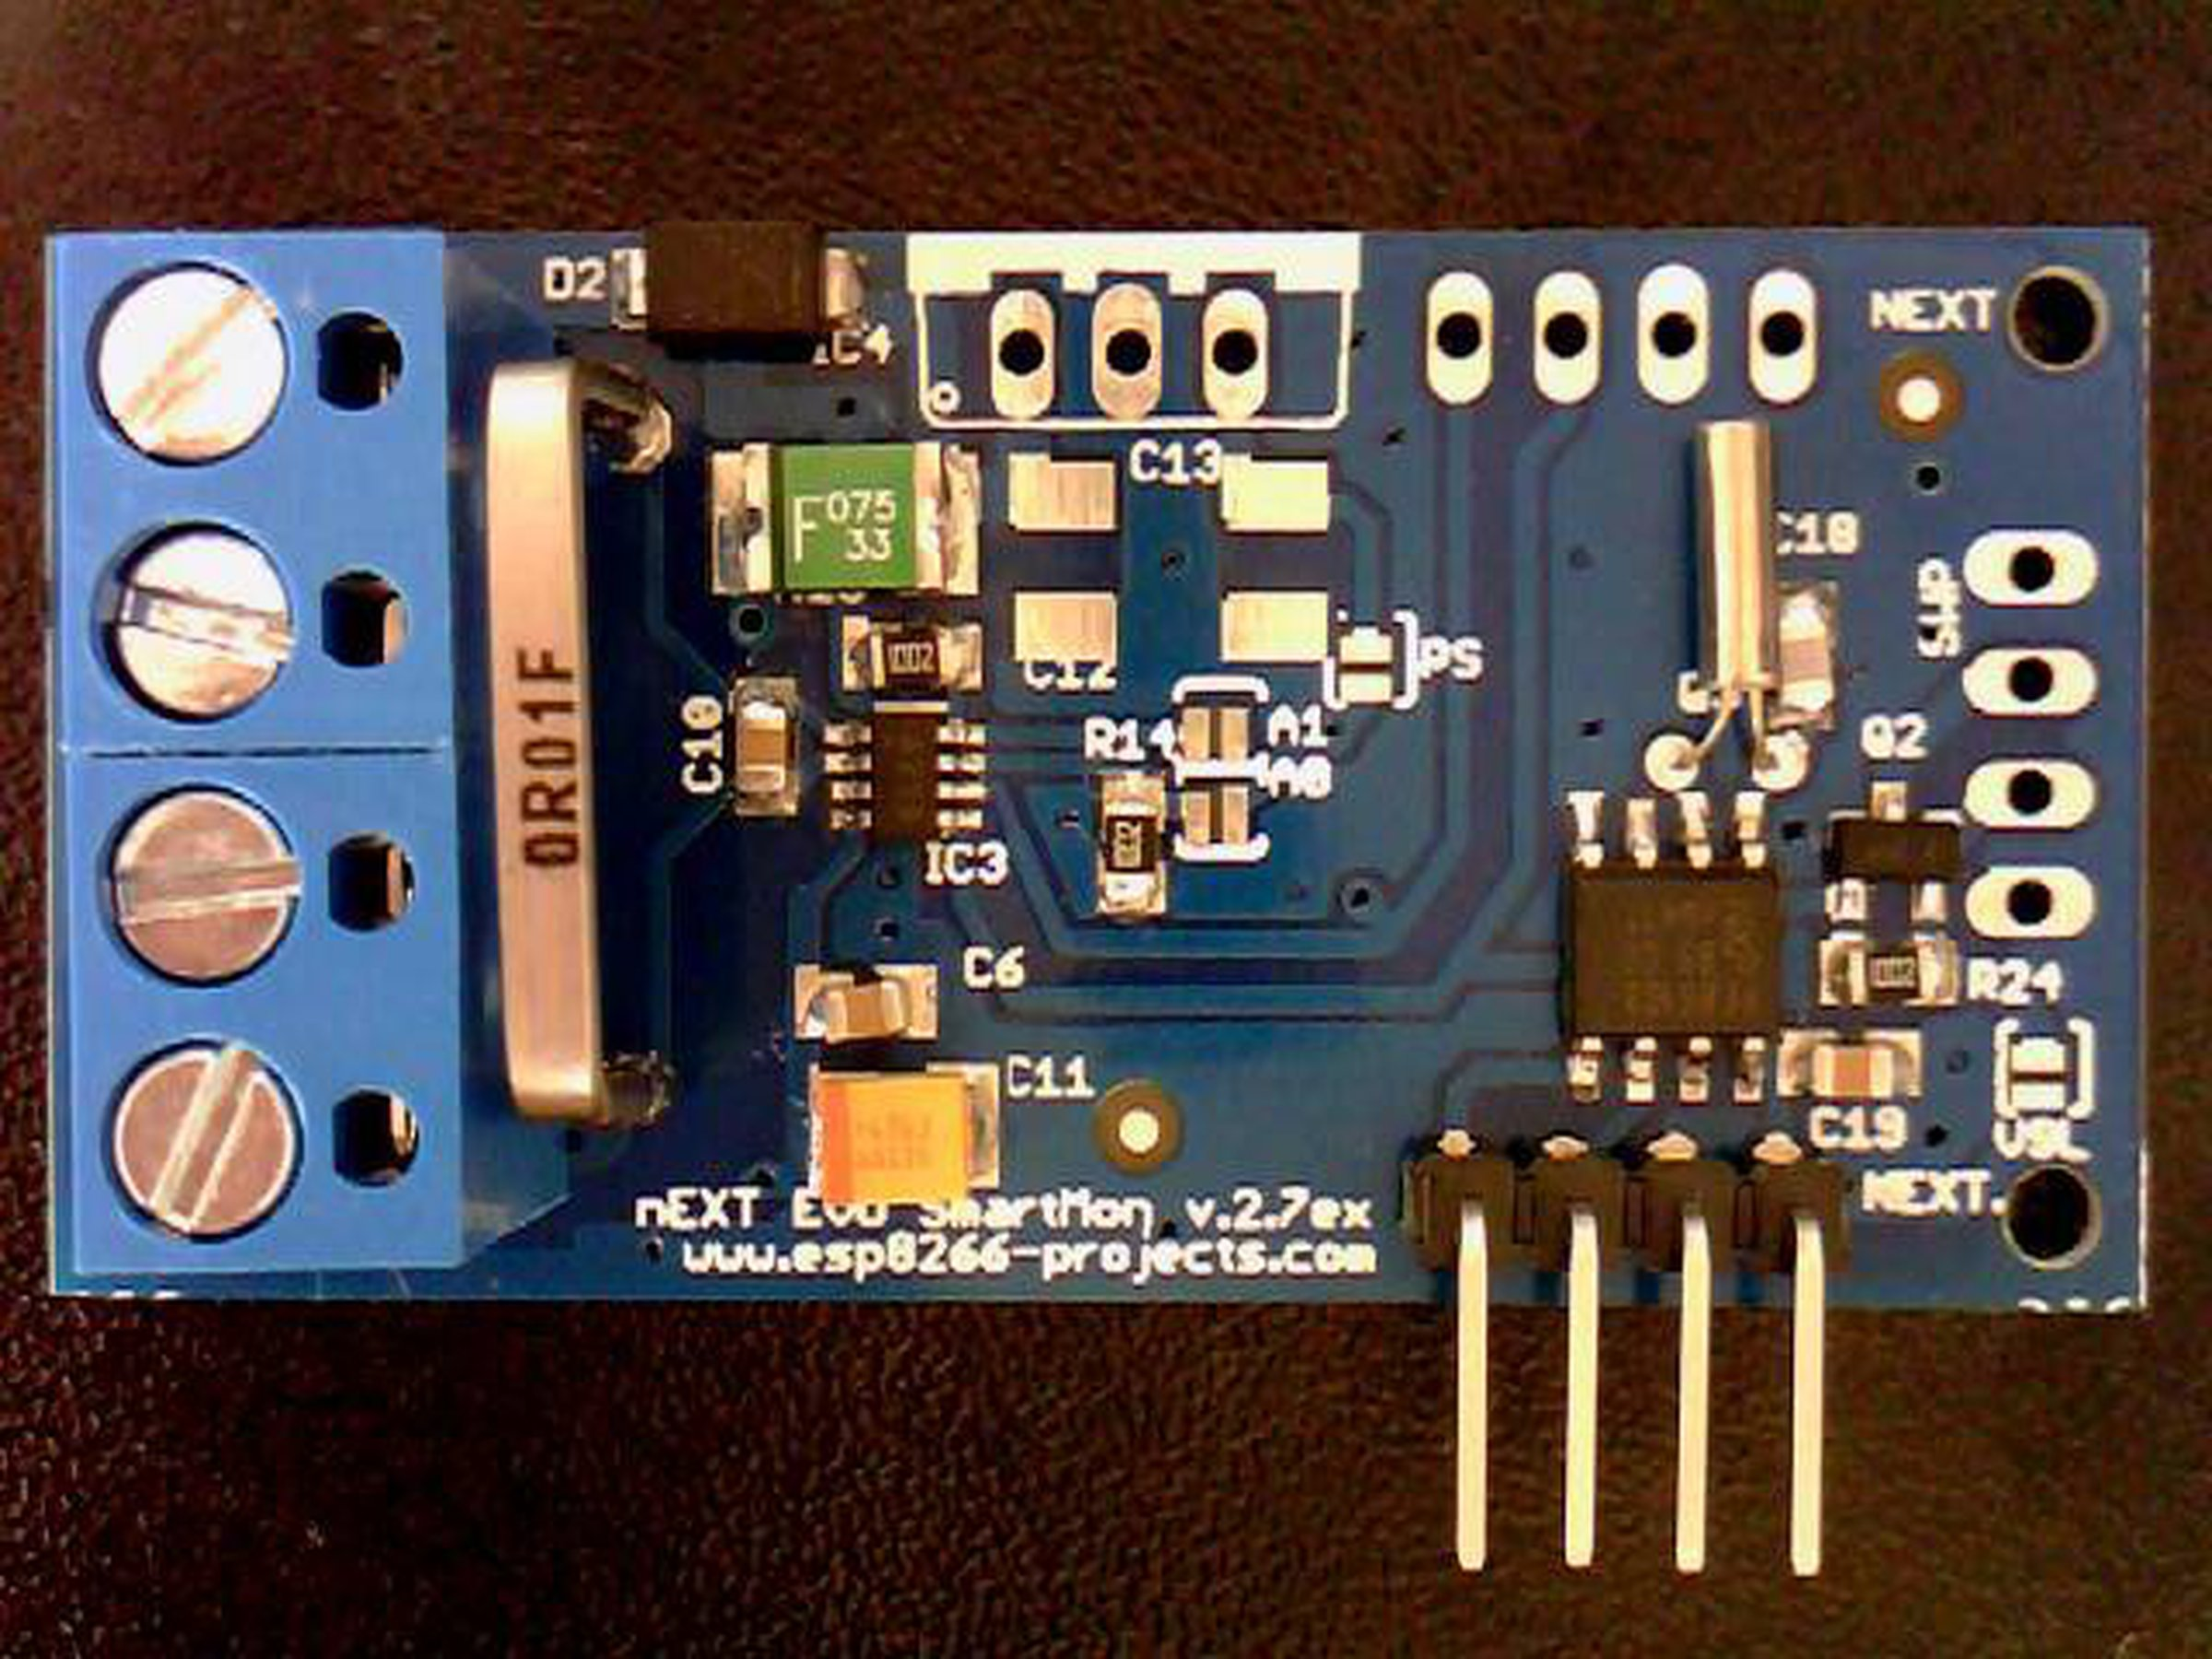 Browse products by NextEVO on Tindie